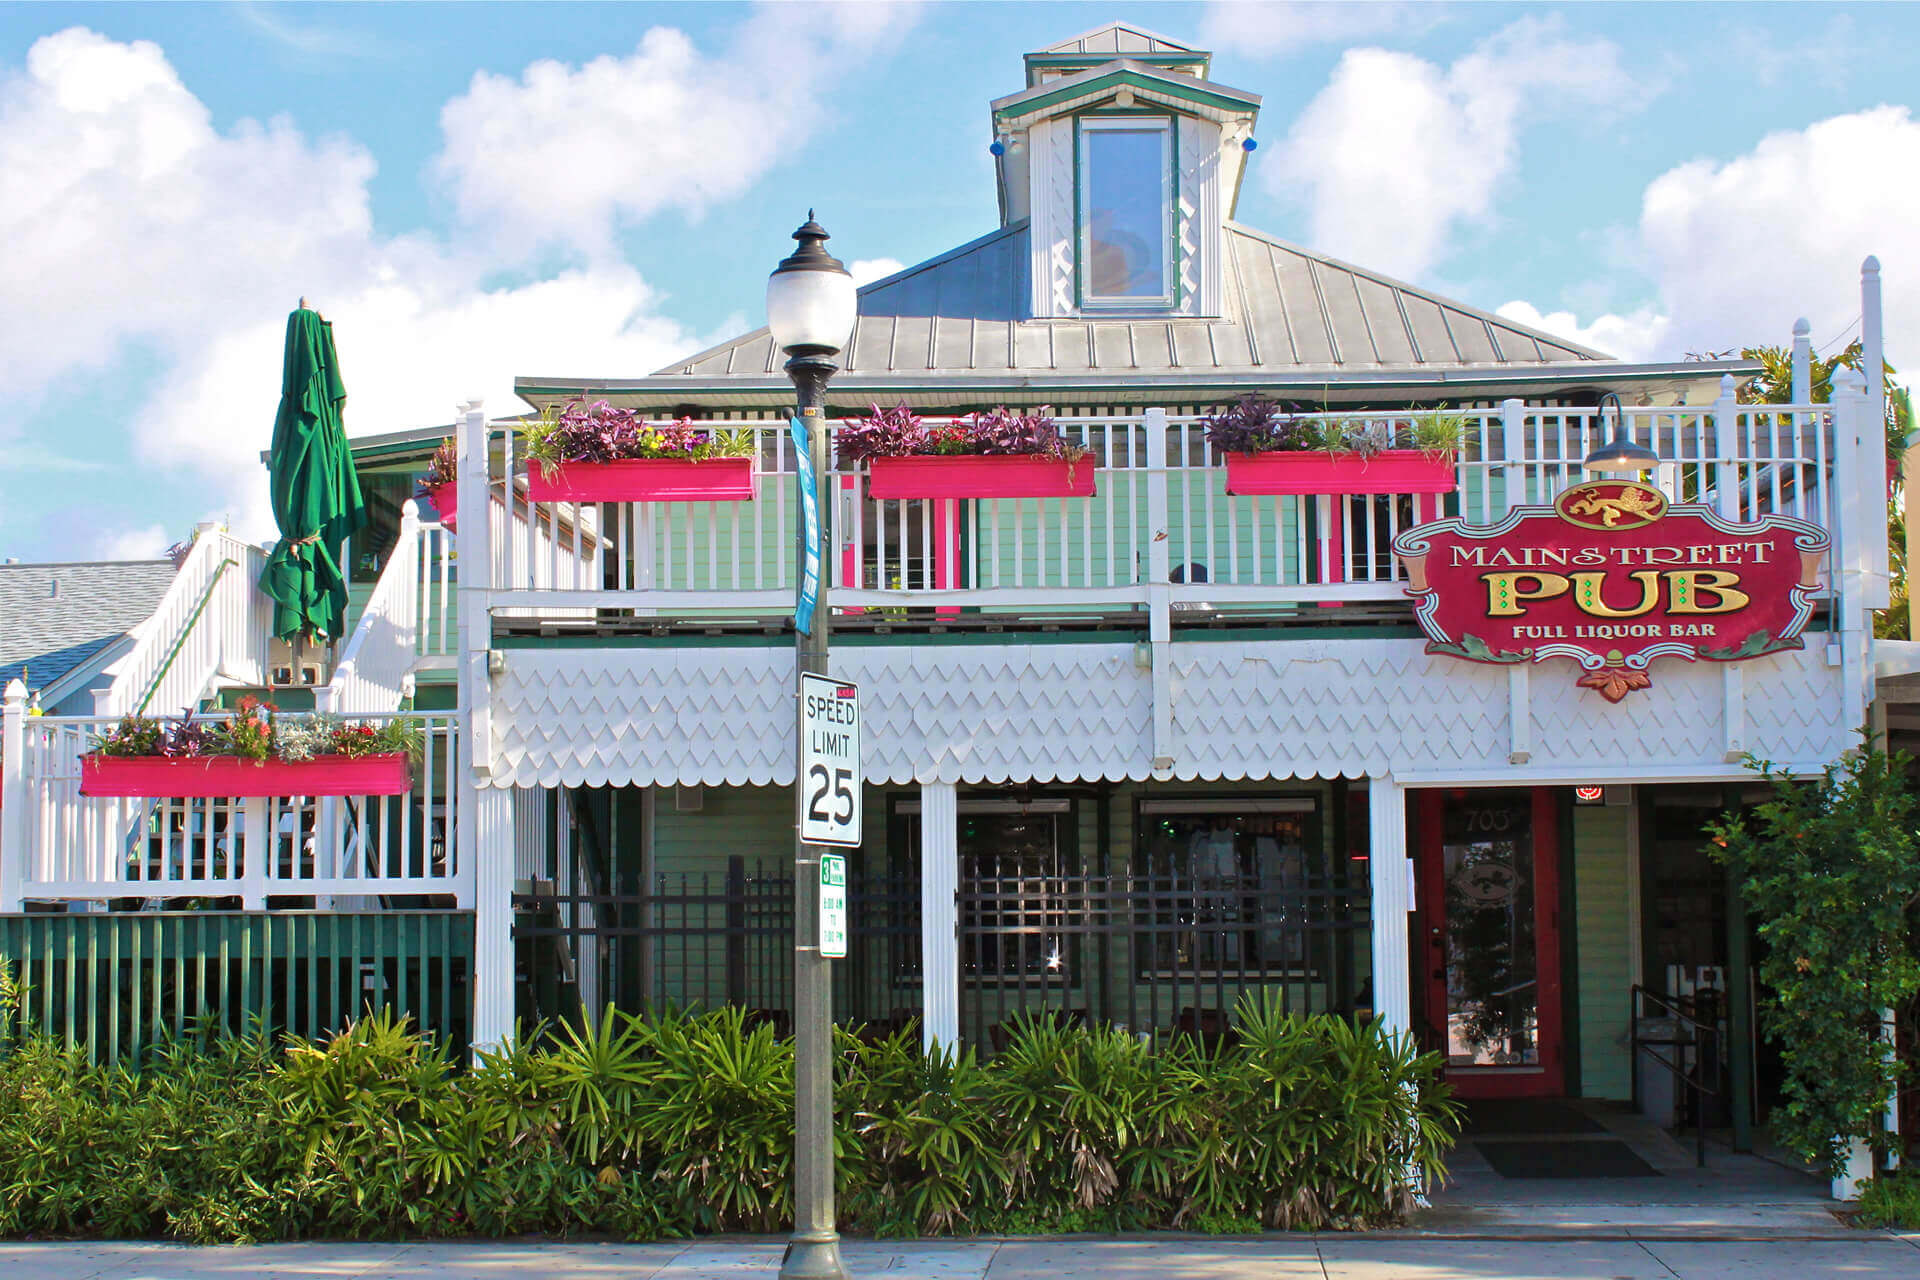 Mainstreet Pub & Restaurant offers Private Party Events & Catering in Melbourne, FL & Surrounding Areas. Plan Your Next Event at Mainstreet Pub & Restaurant